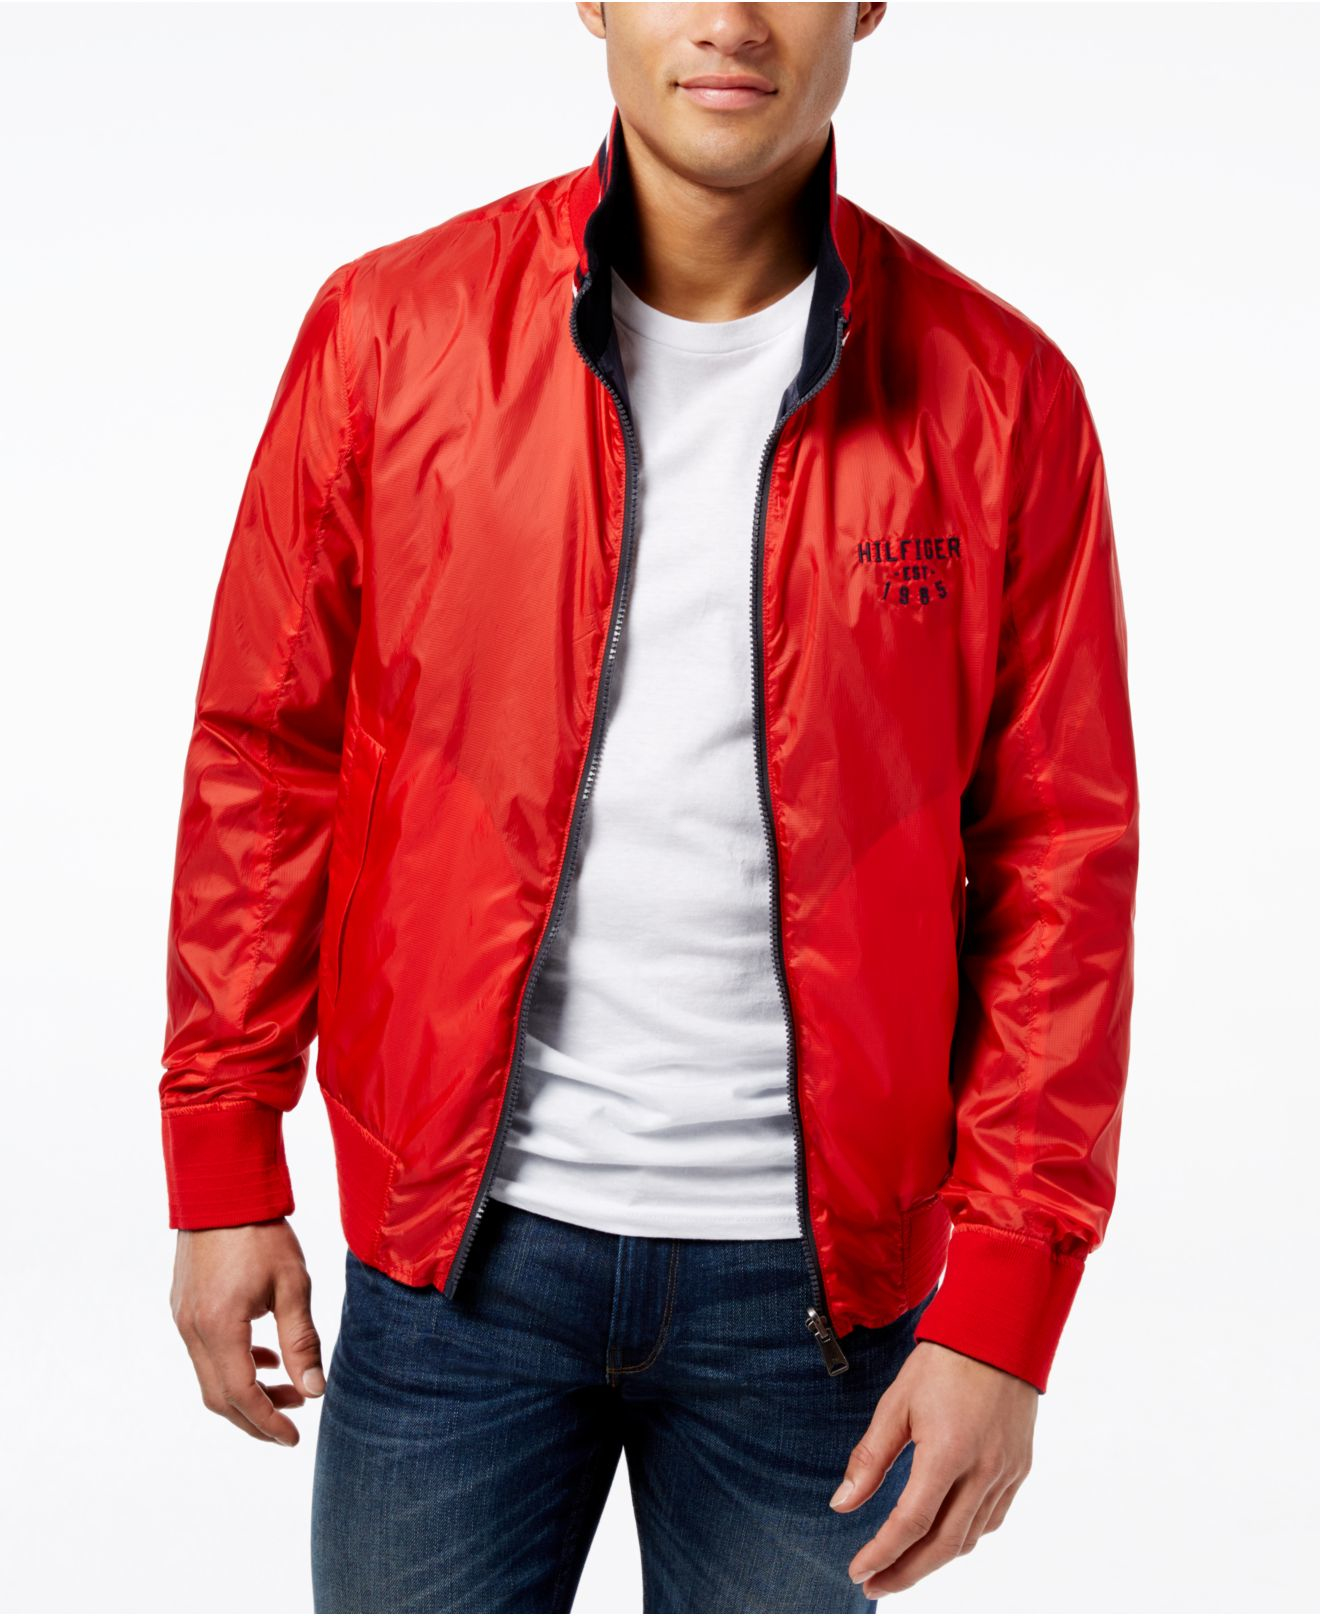 Tommy hilfiger Men's Cromwell Reversible Lightweight Jacket in Red ...